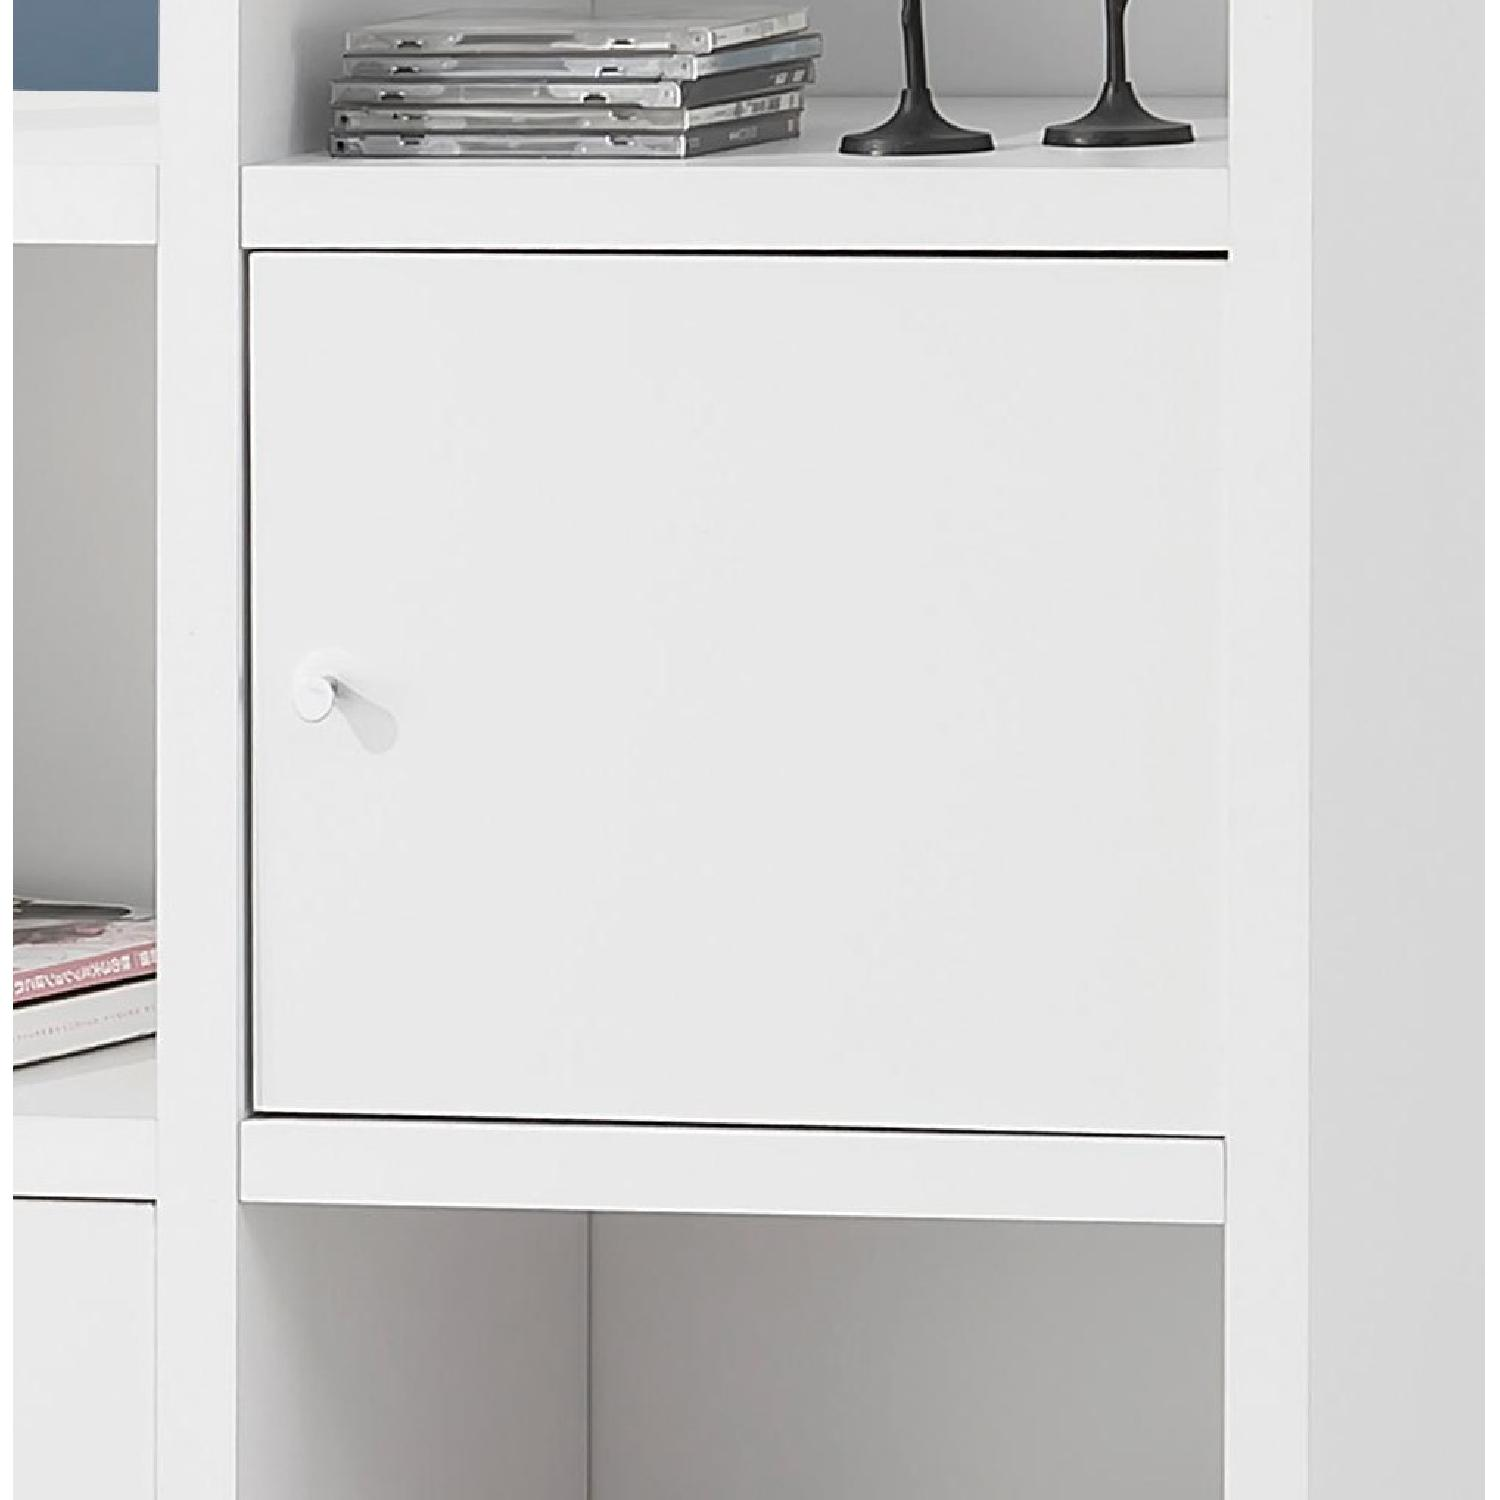 Reversible Asymmetric Shelf Cabinet in White Finish - image-3